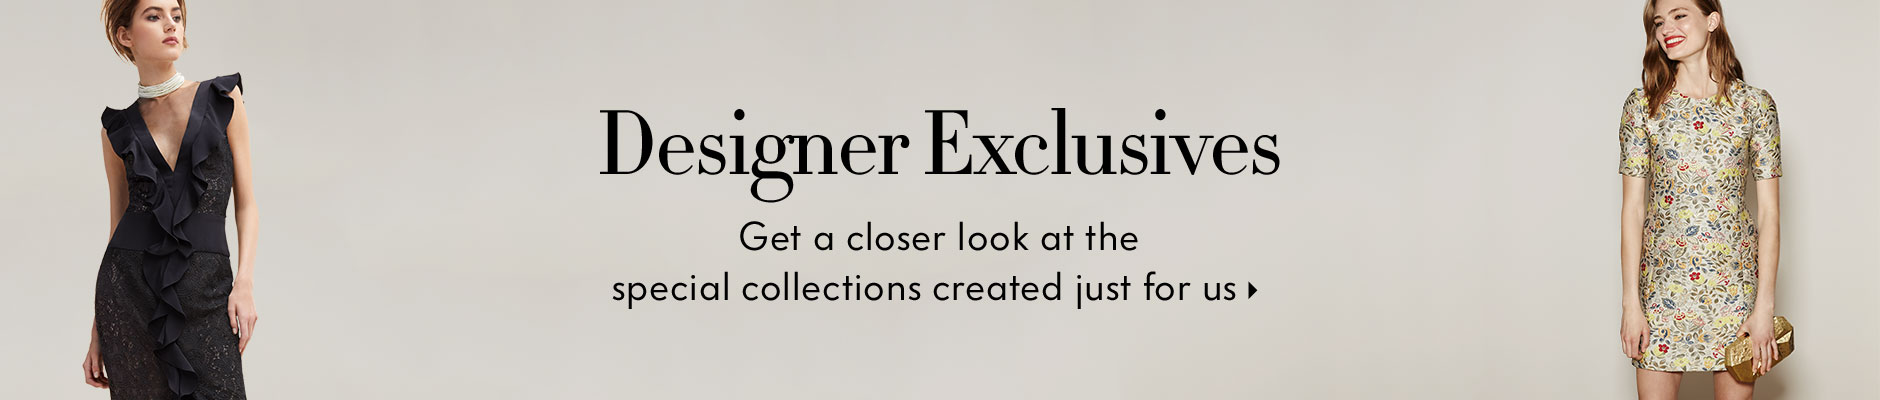 Designer Exclusives - Get a closer look at the special collections created just for us